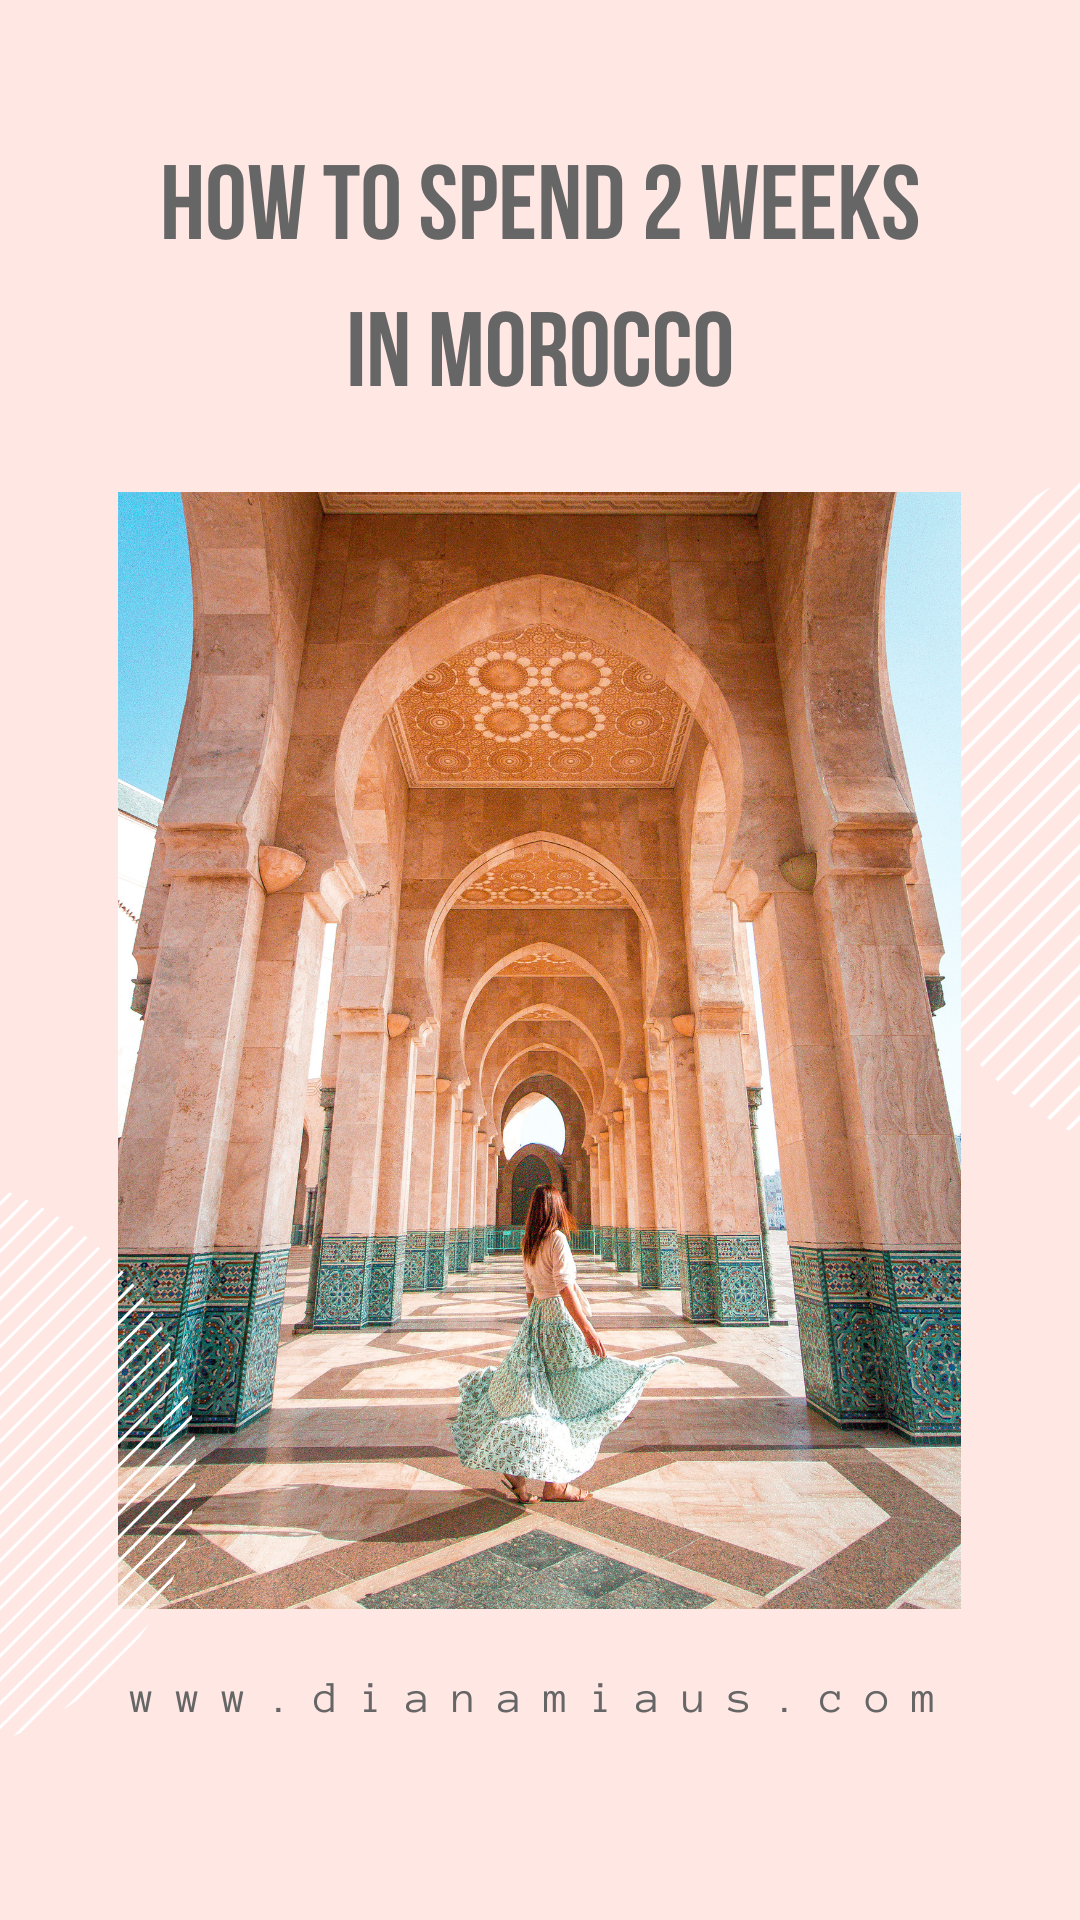 What to visit in Morocco in 2 weeks